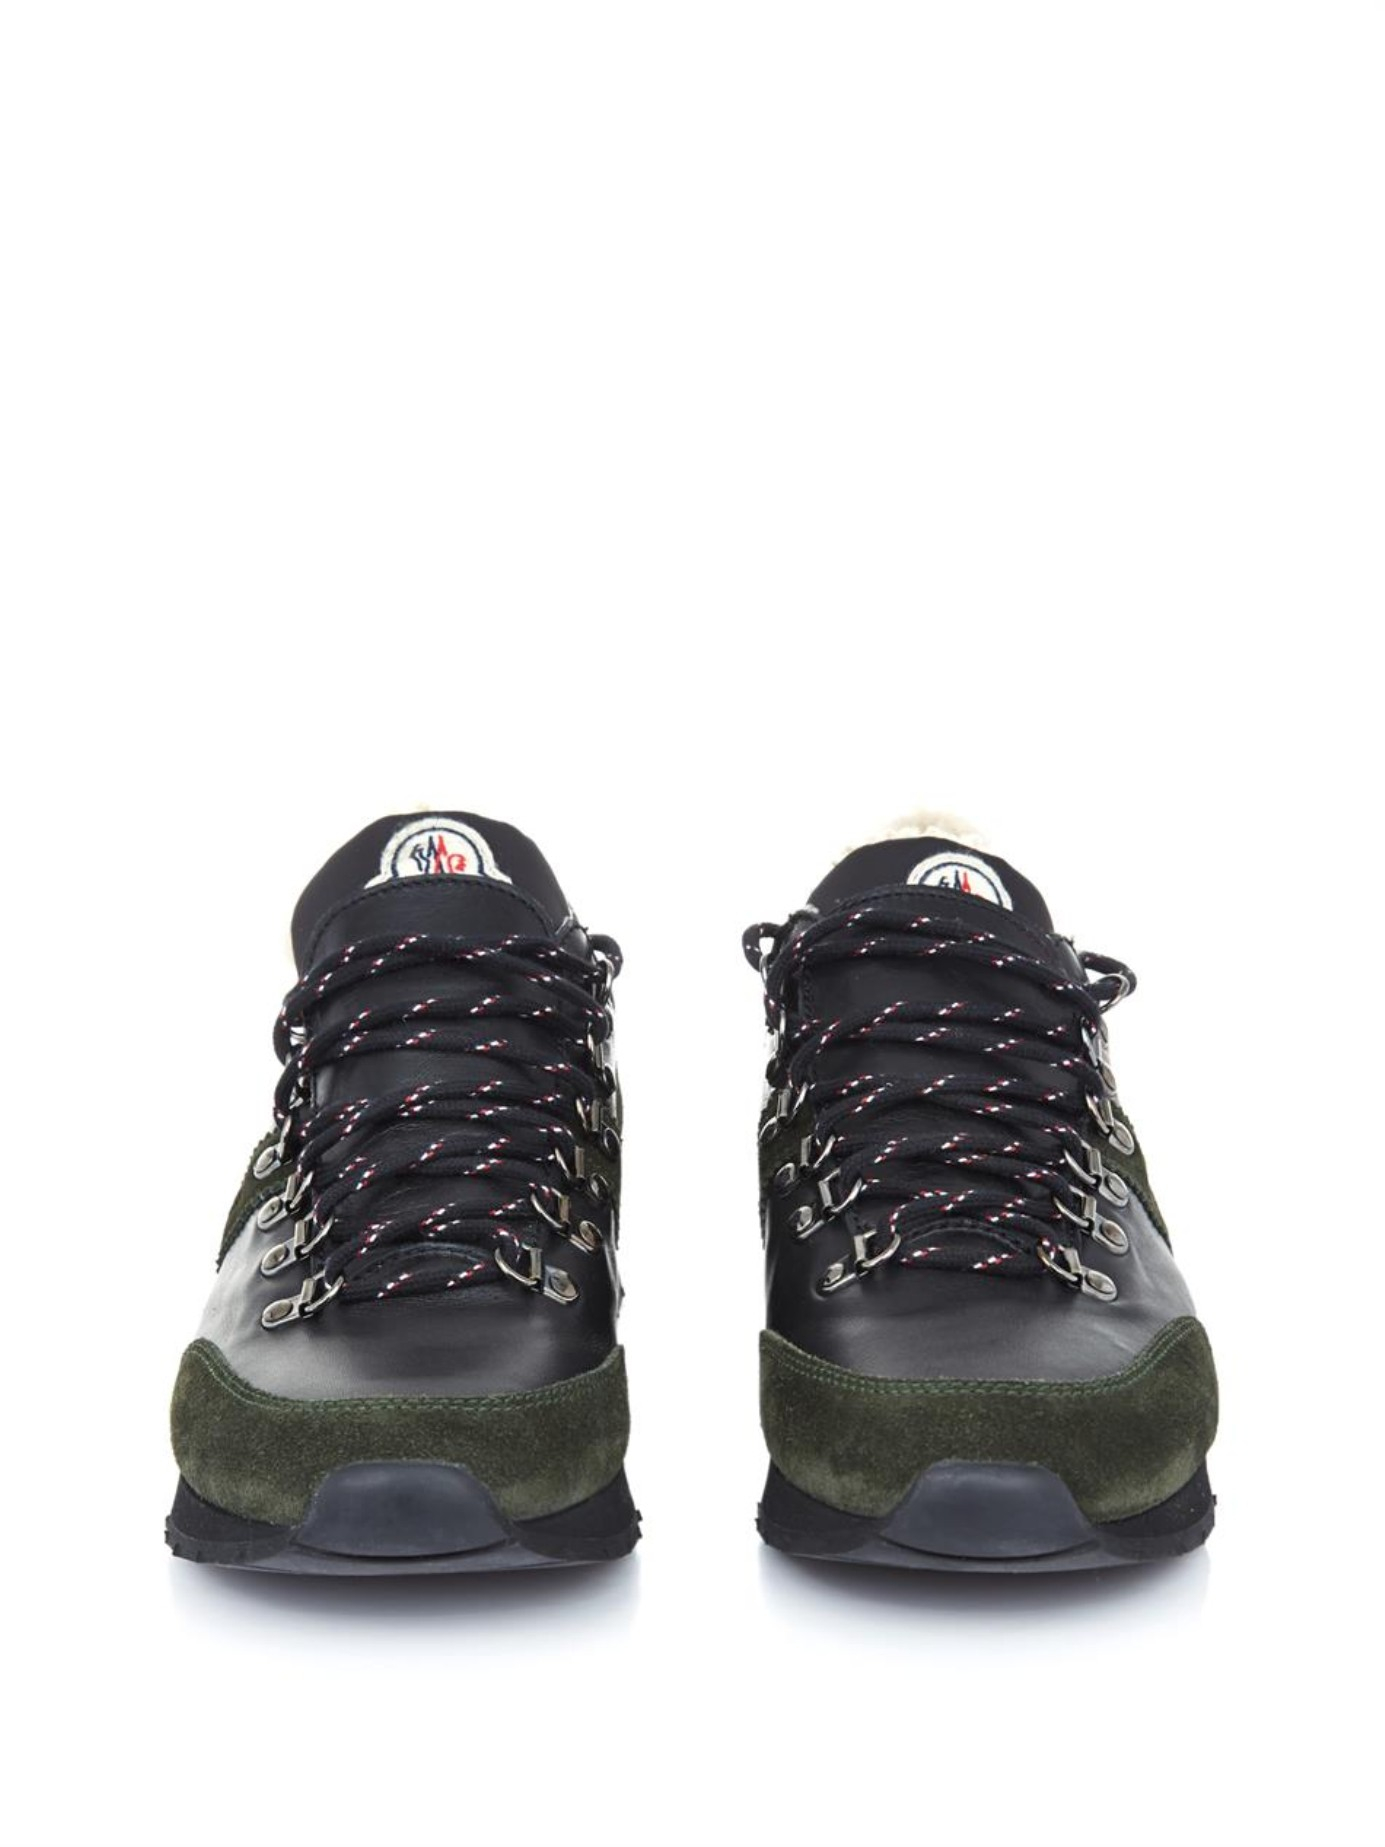 moncler grey camo trainers